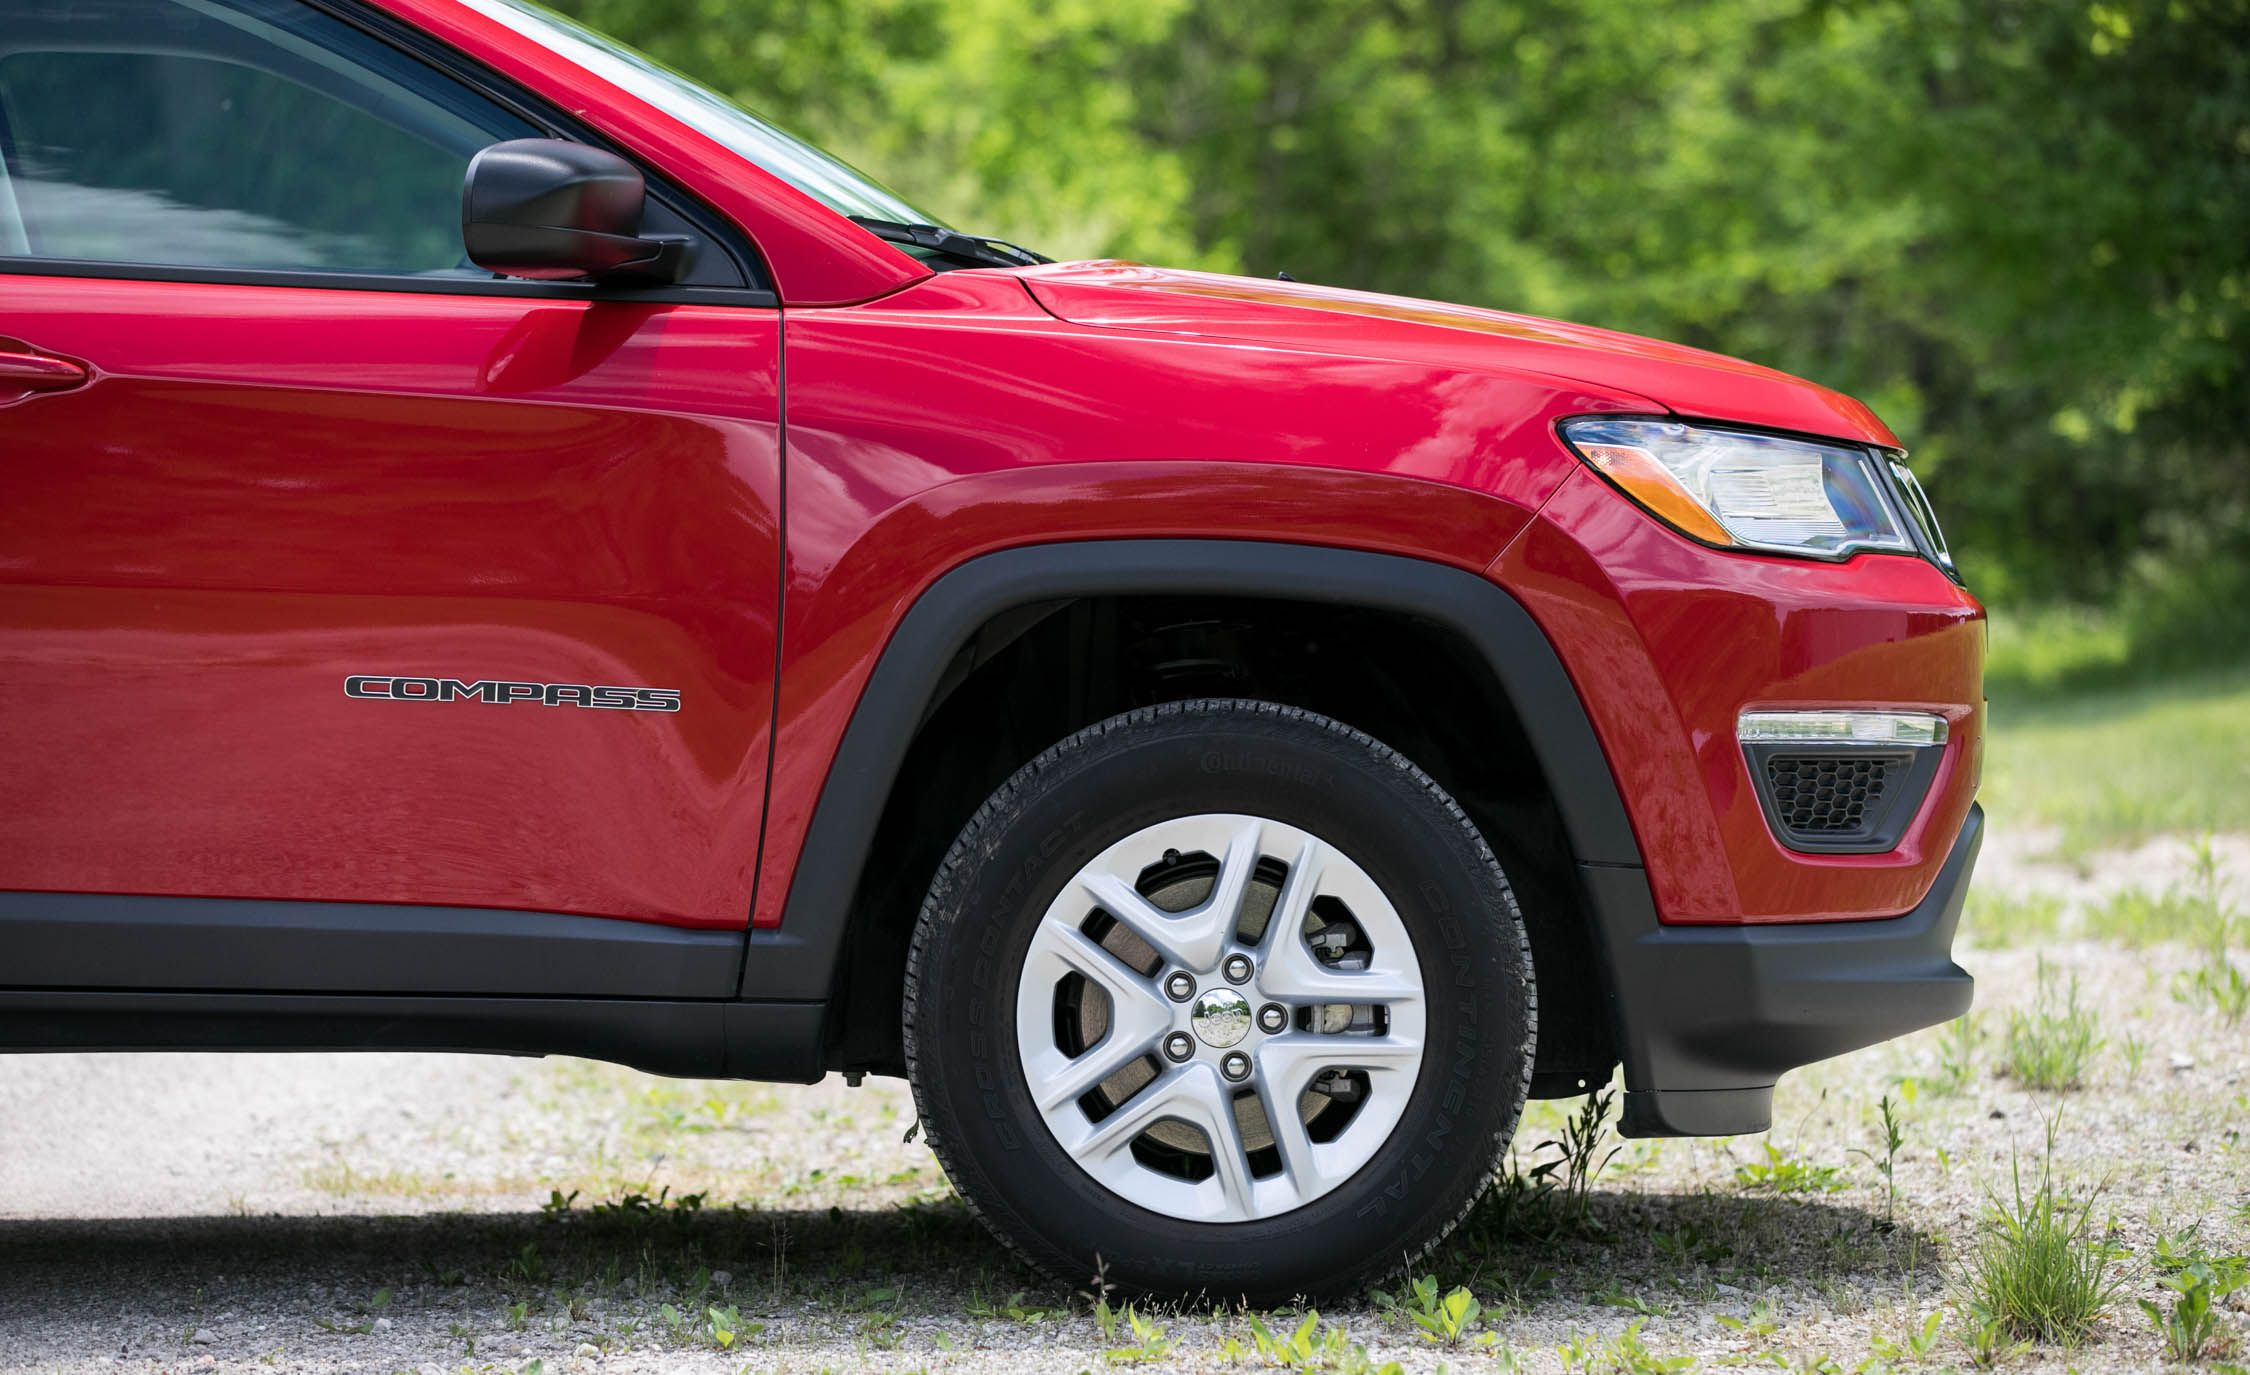 2007 jeep compass manual transmission problems